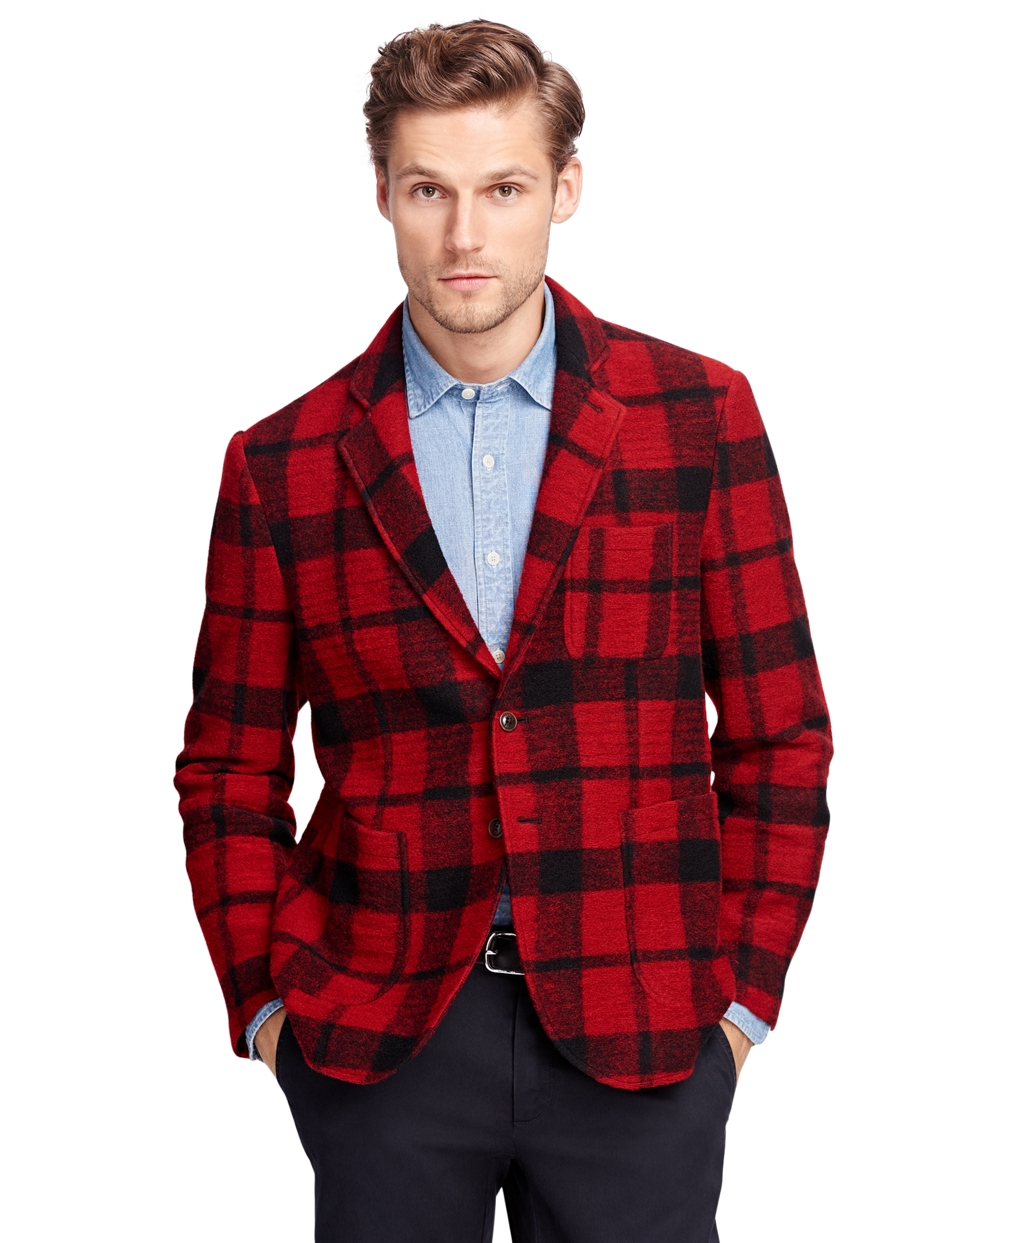 Men's Red and Black Check Knit Blazer | Brooks Brothers